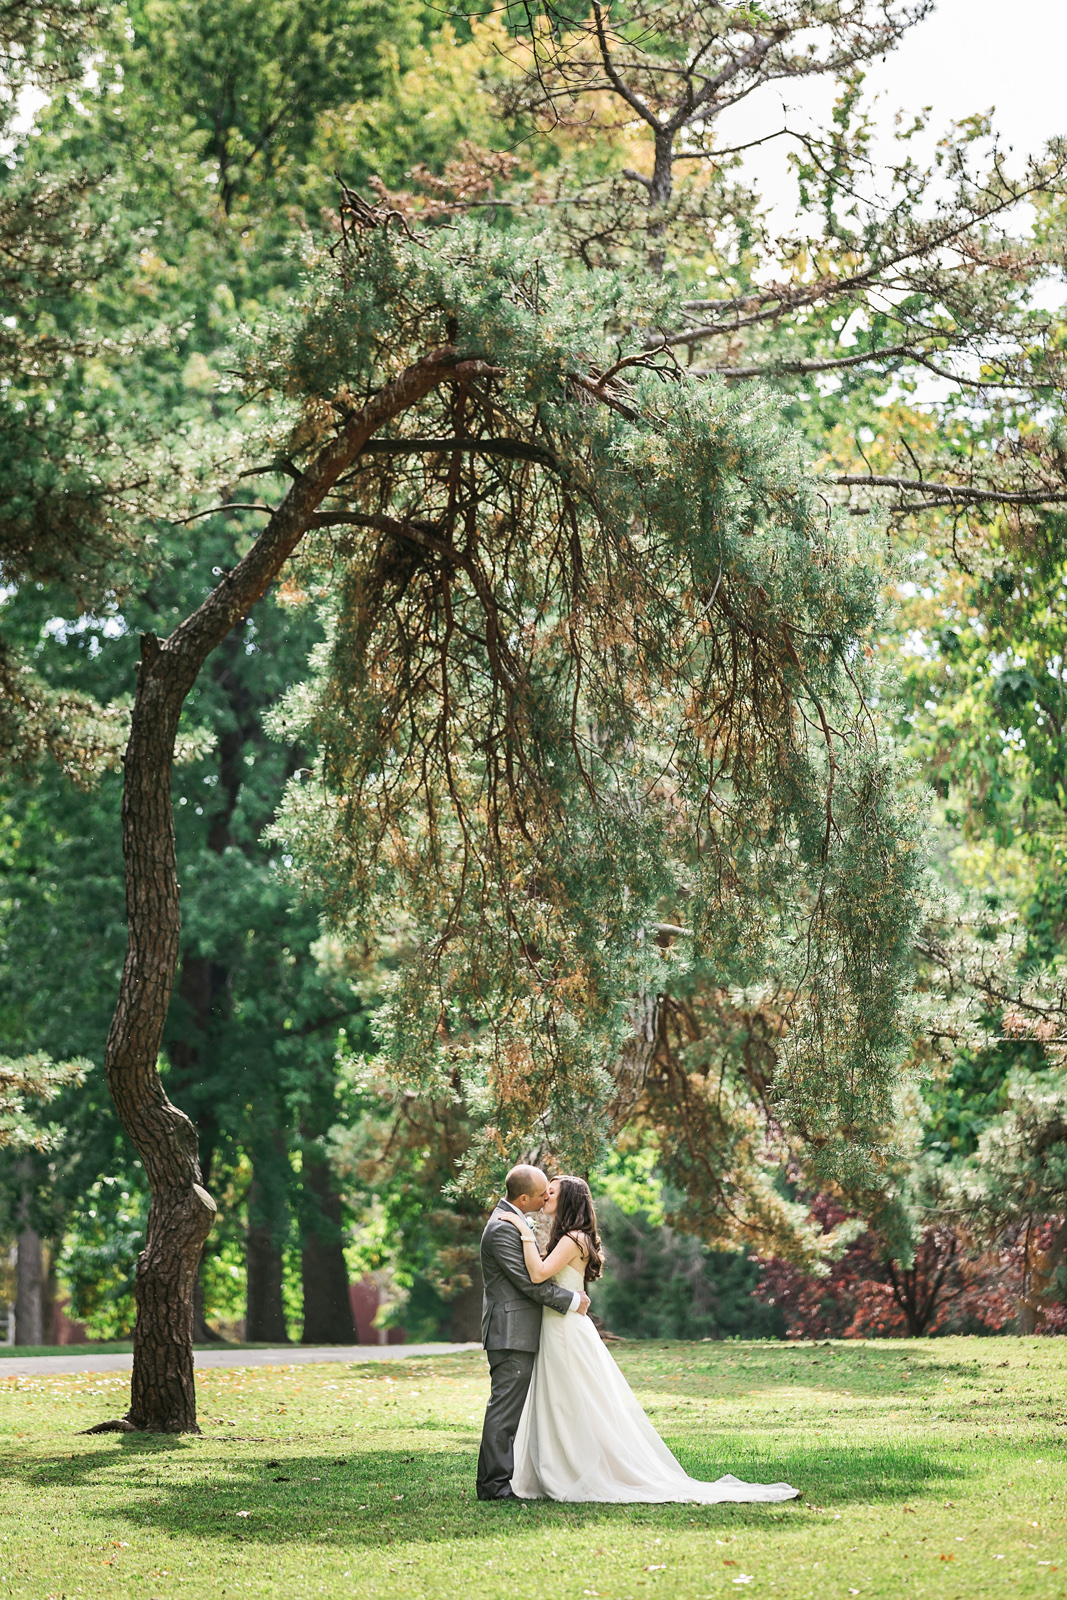 Oldani-Photography-St-Louis-Tower-Grove-Park-Wedding-Photography-Music-Stand_20140927_15113219.jpg